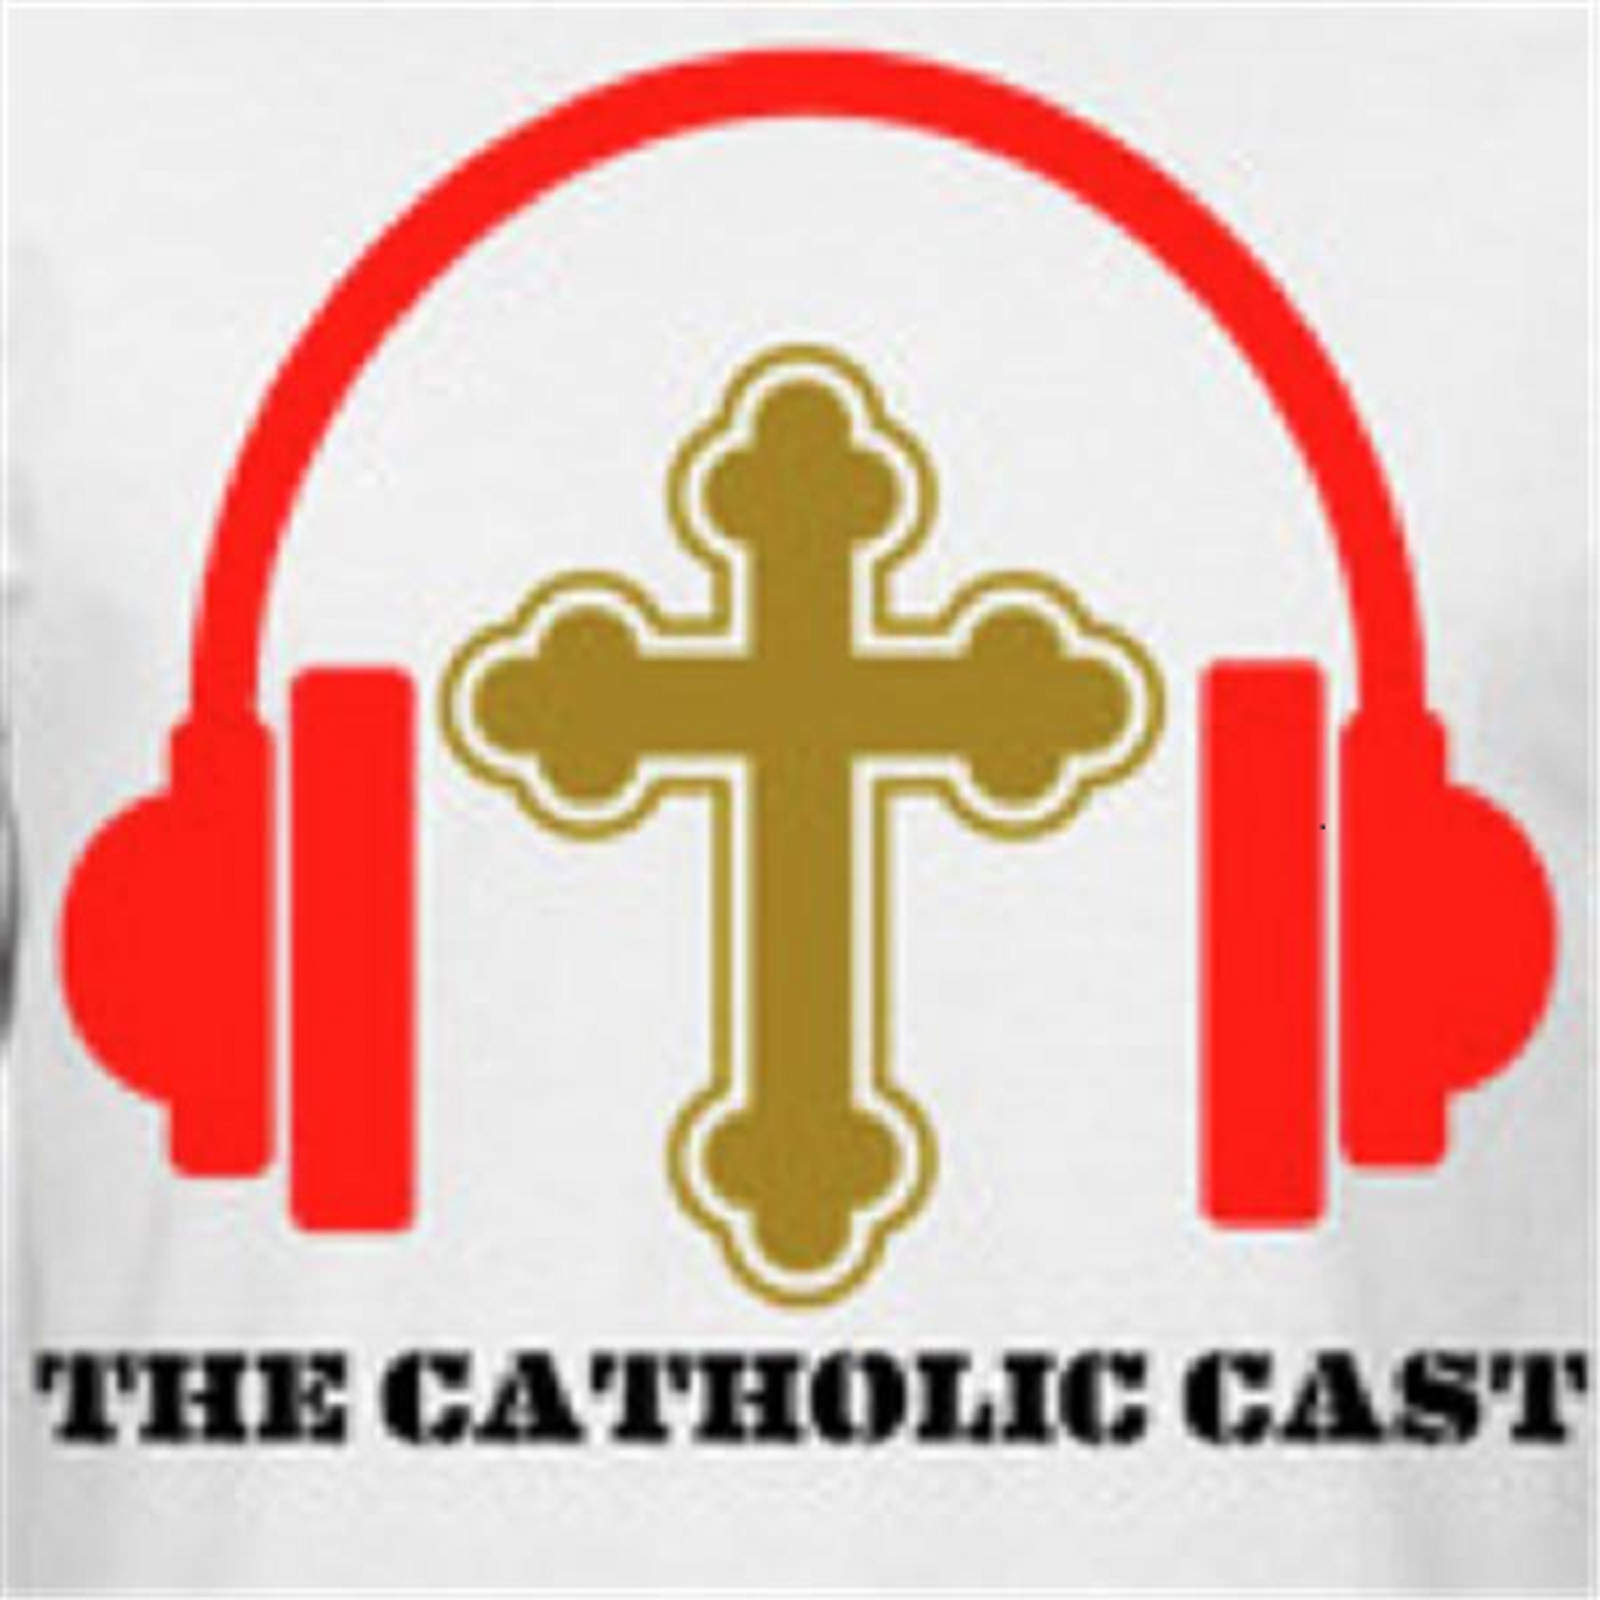 Catholic Cast Episodes(BlogTalkRadio)